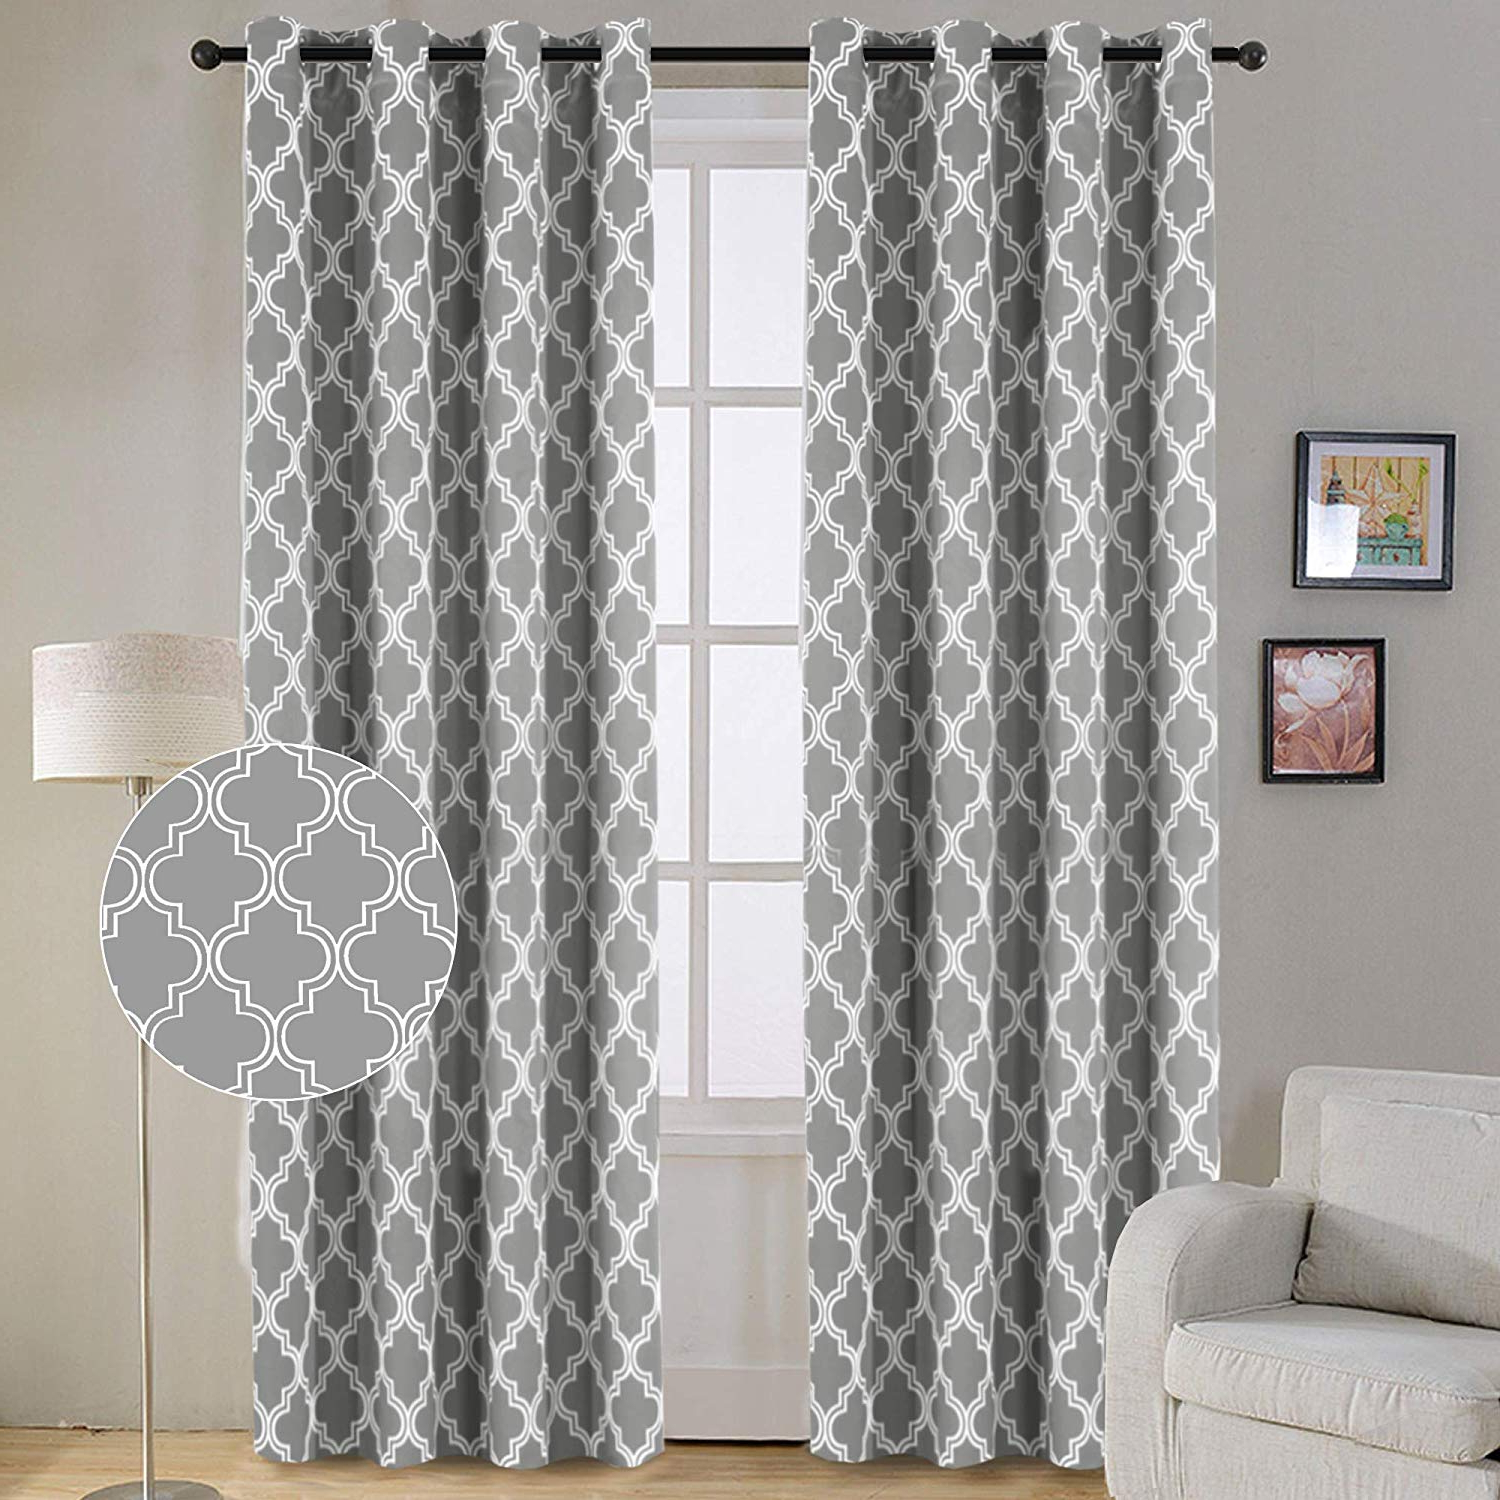 Moroccan Style Thermal Insulated Blackout Curtain Panel Pairs Within Well Known Flamingo P Modern Moroccan Geometric Decor Curtains Print Thermal Insulated  Blackout Curtains For Living Room 52W X 84L Inch Gray 1 Pair (Gallery 12 of 20)